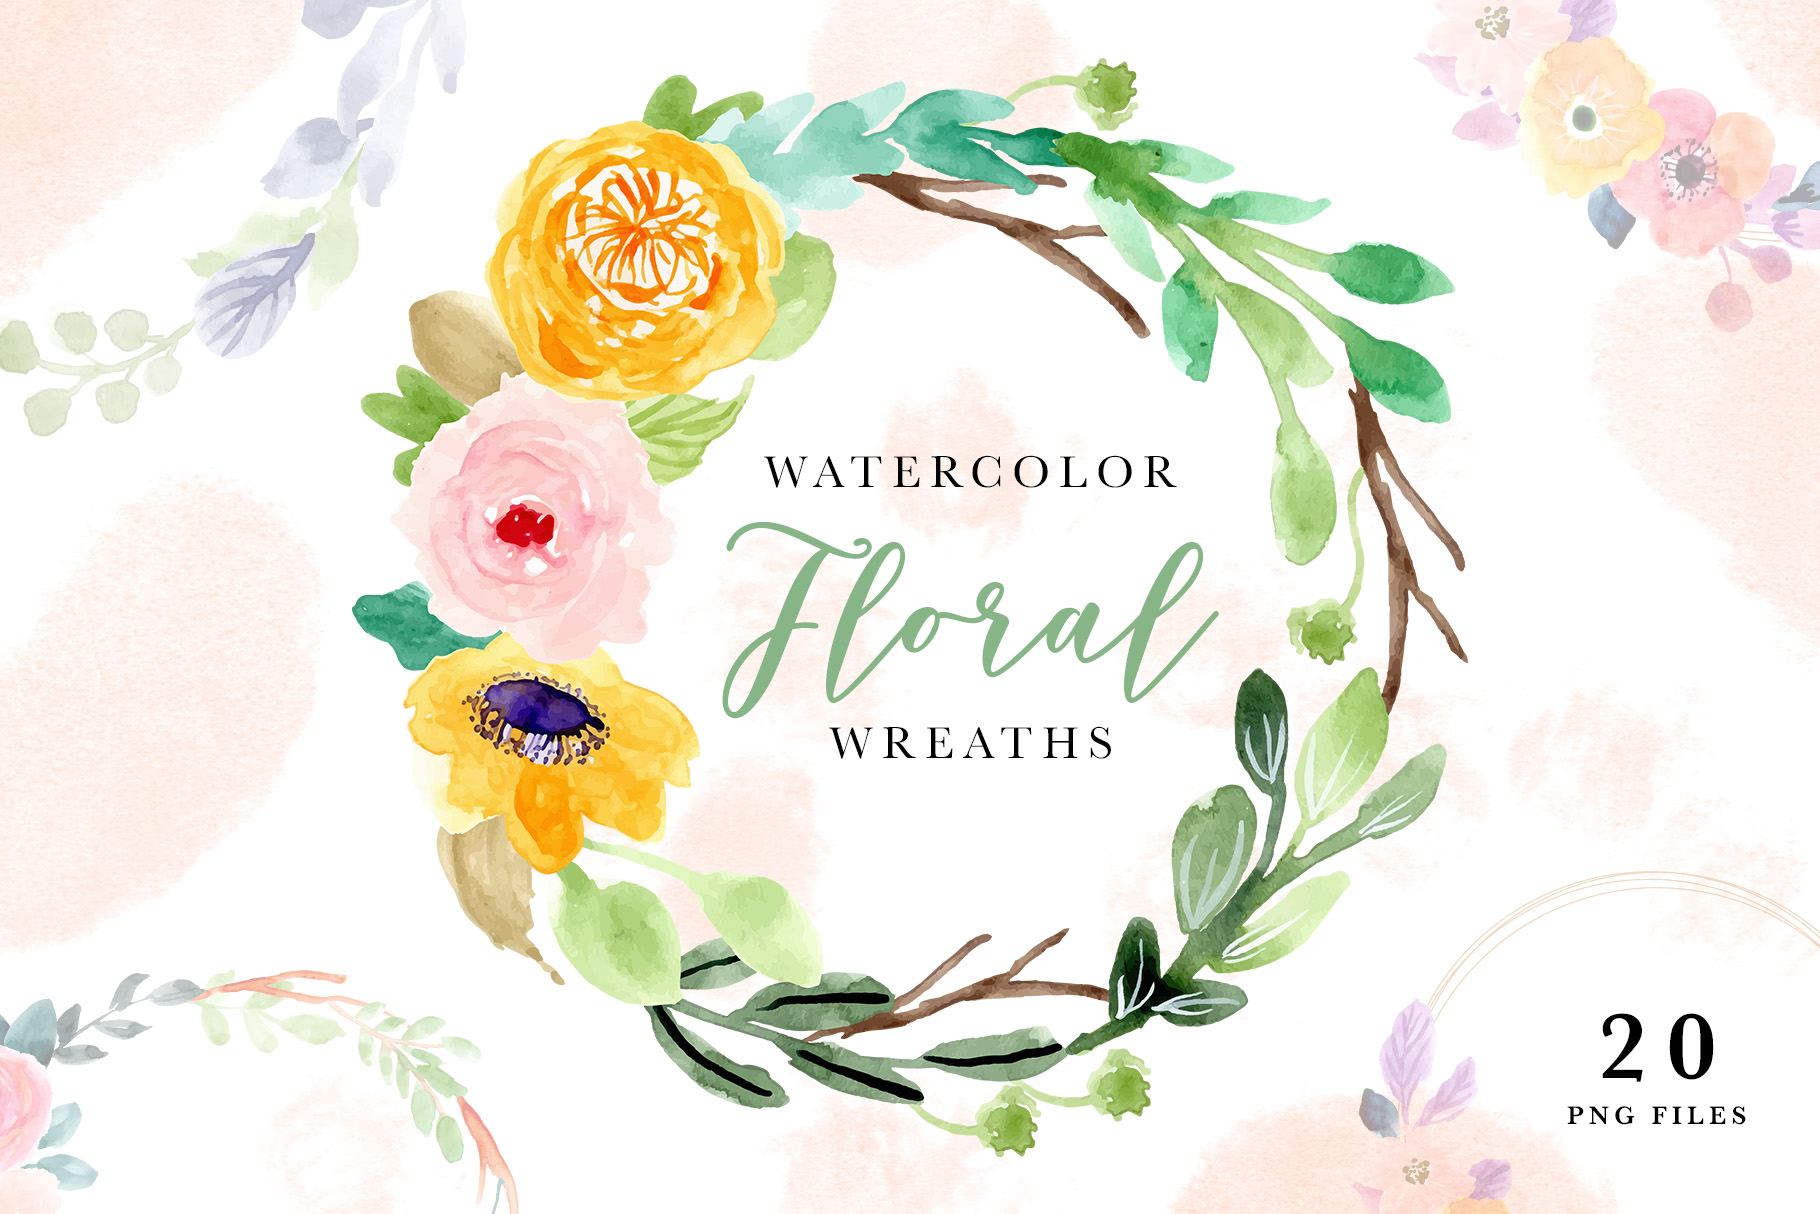 Watercolor Floral Wreaths Vol 2 Graphic By Wulano Creative Fabrica